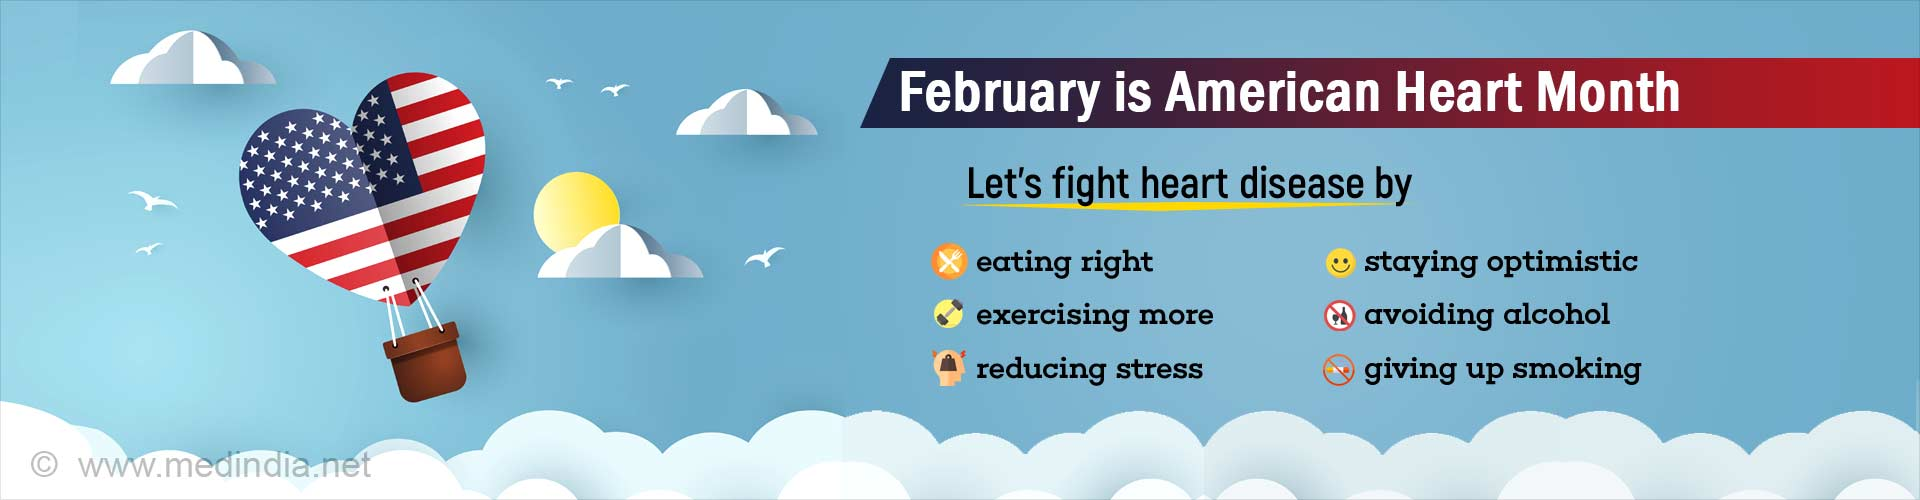 American Heart Month: Try to Manage Stress, Stay Optimistic, Avoid Heart Attacks